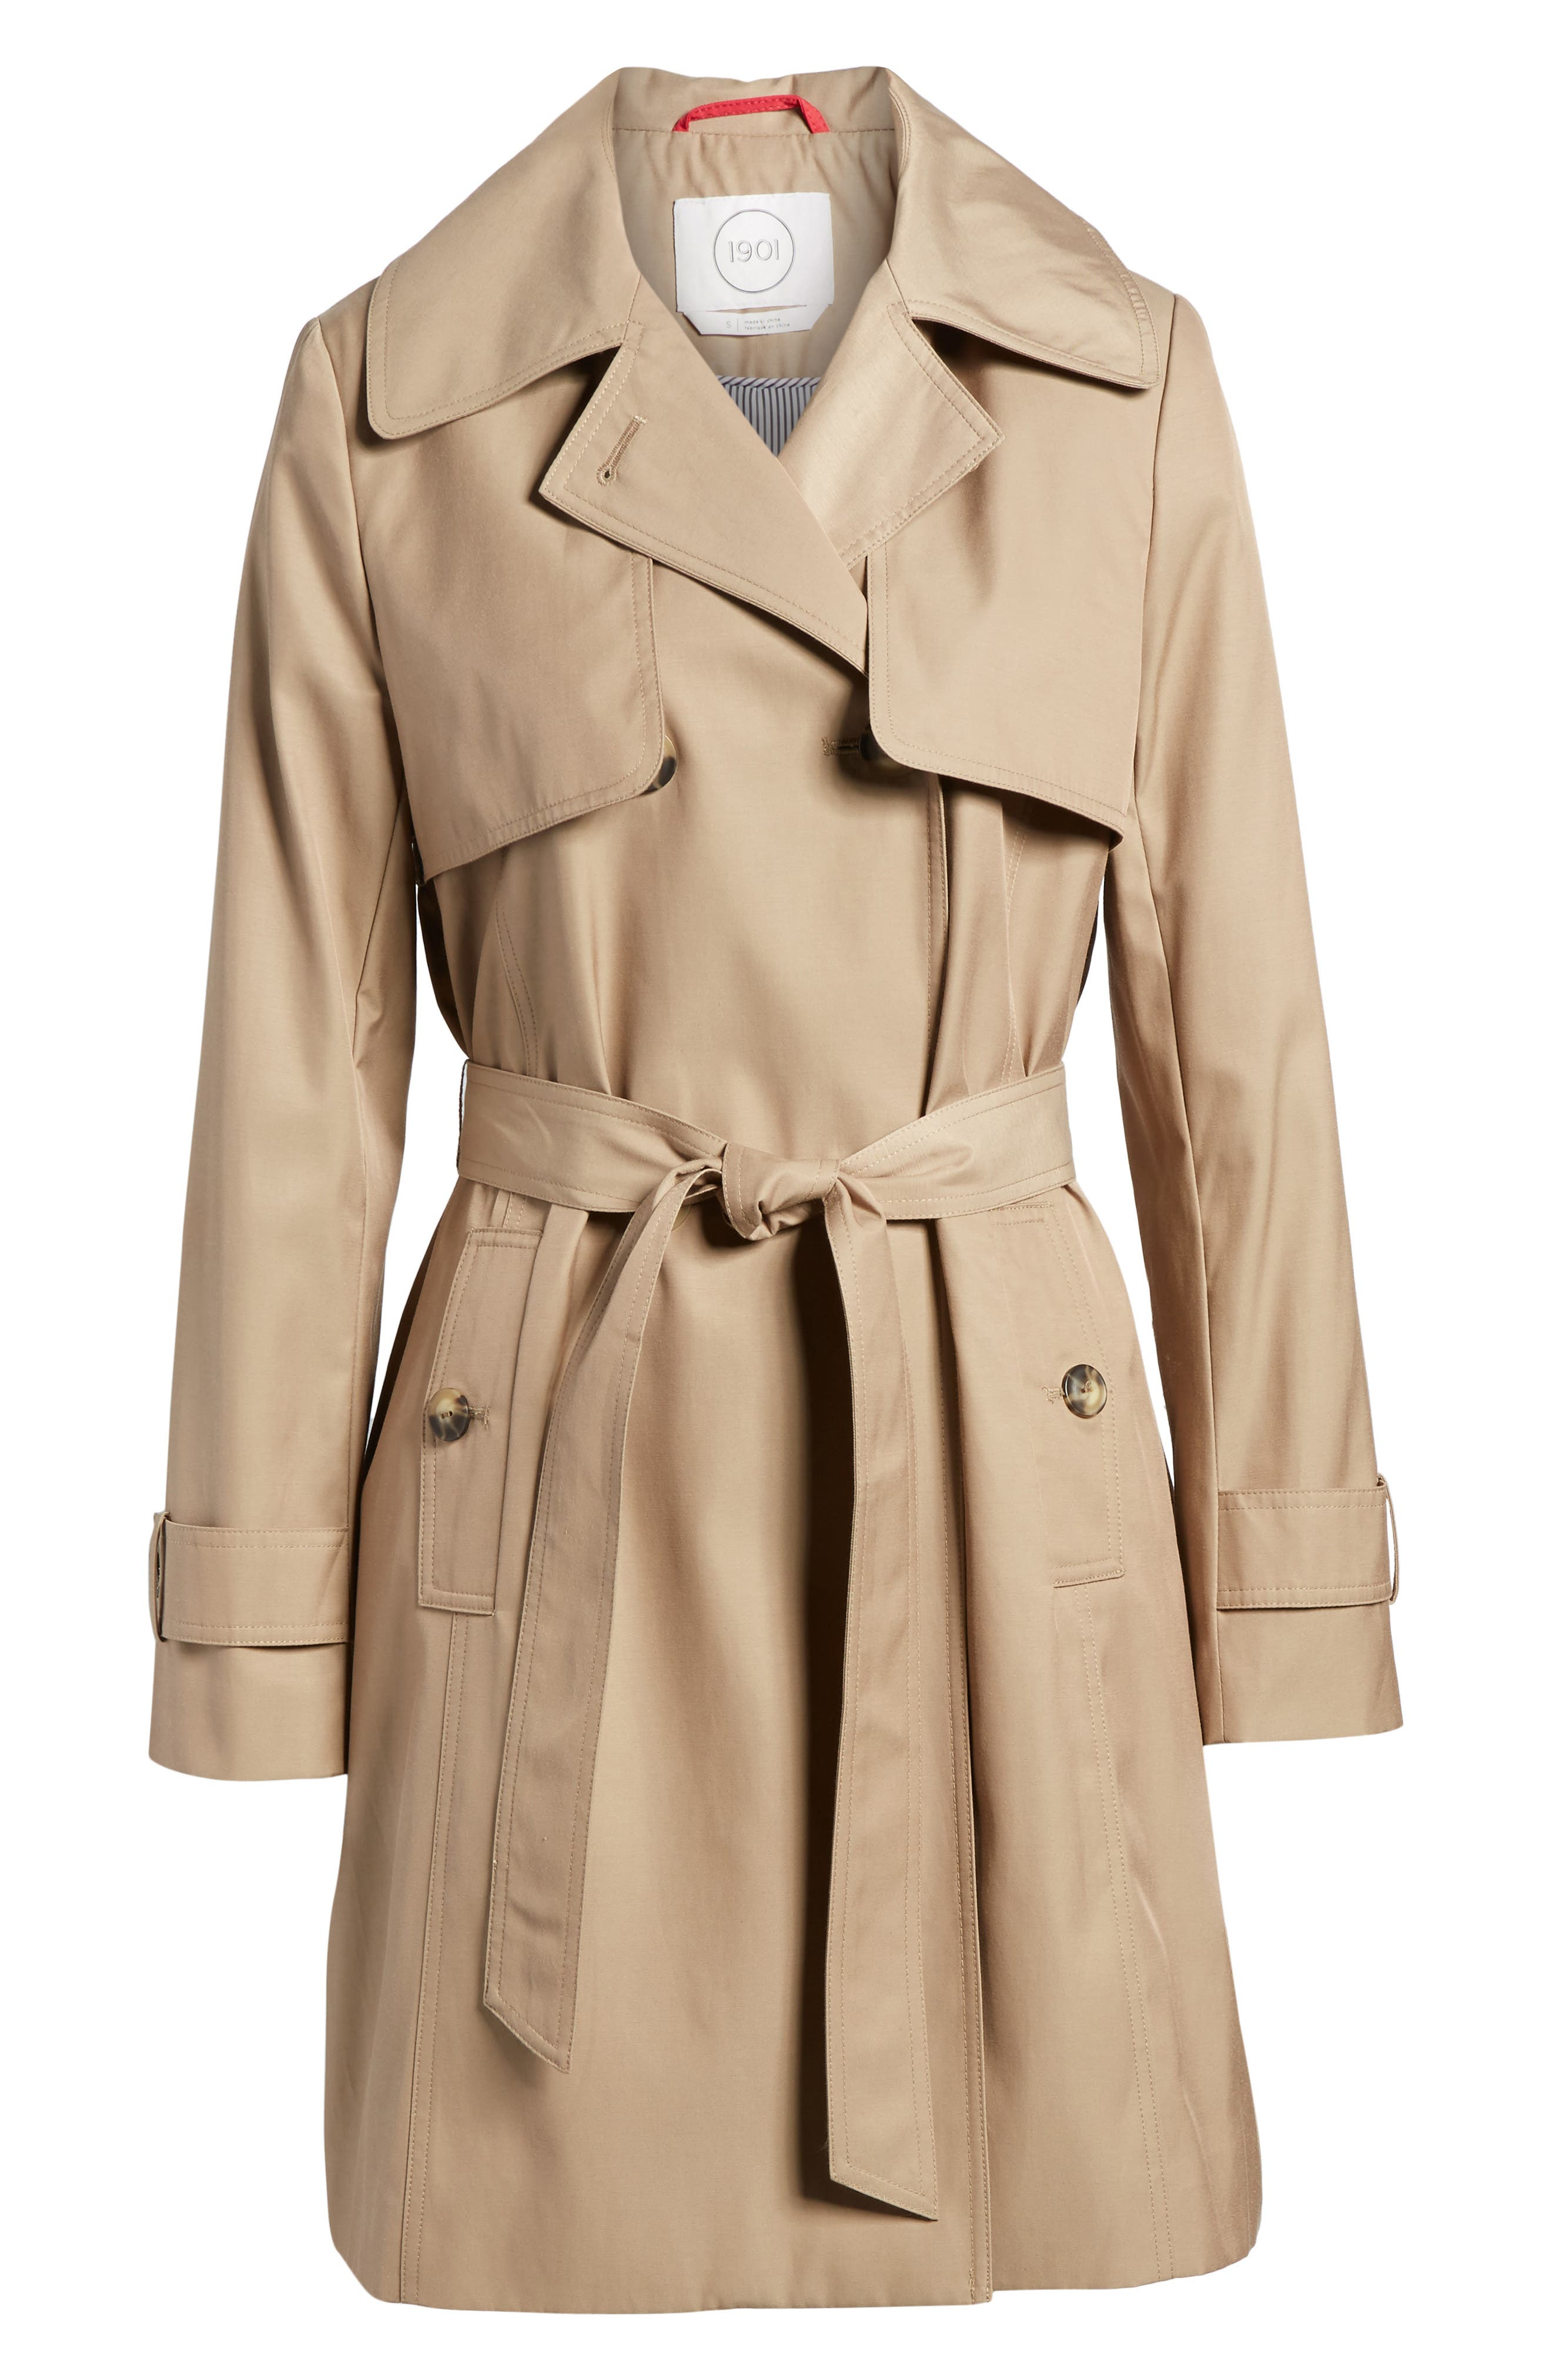 Midi Trench Coat,                             Alternate thumbnail 5, color,                             299